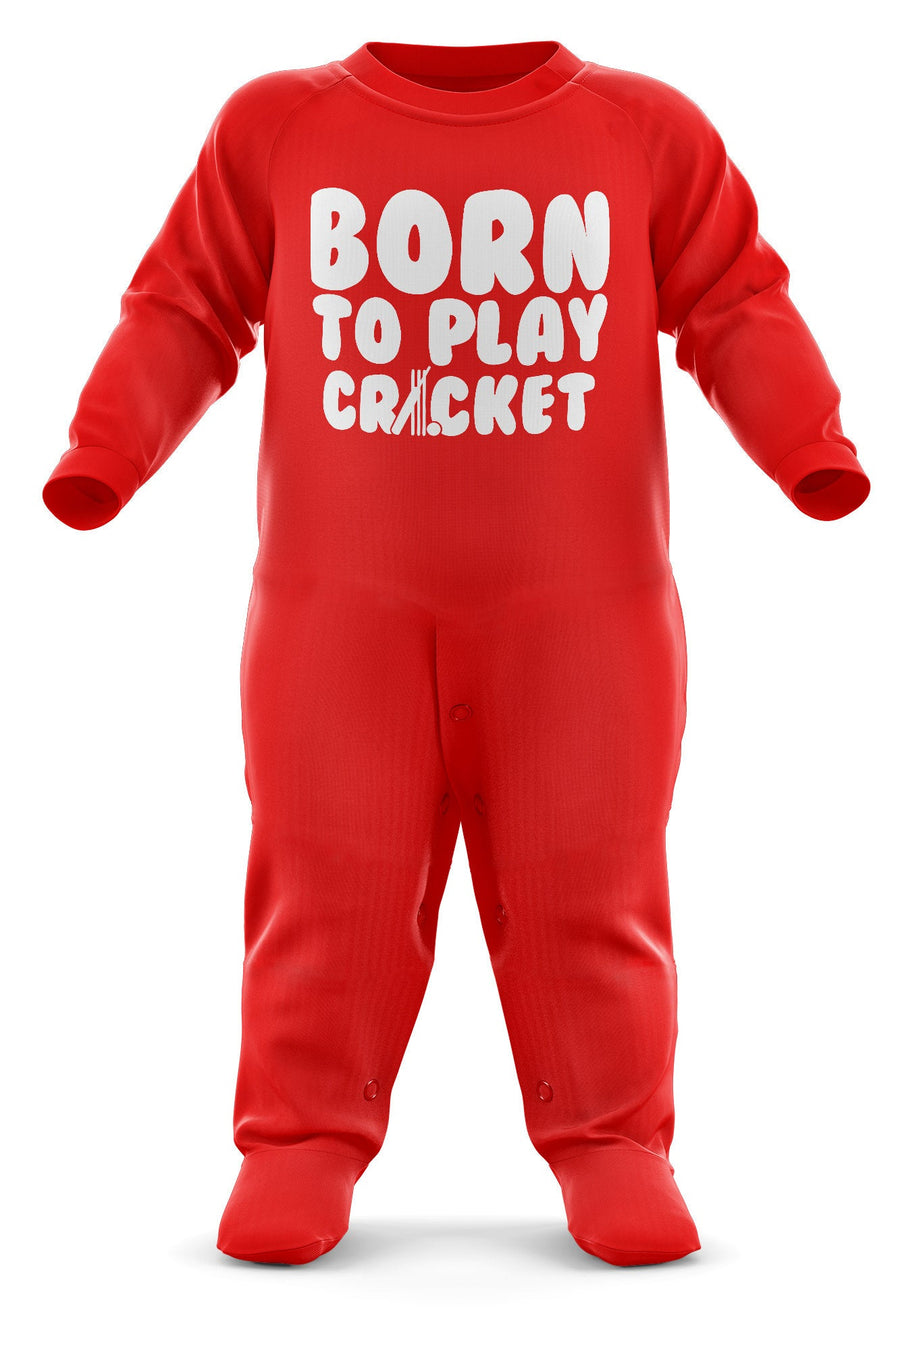 Born To Play Cricket Babygrow - Cricket Baby Romper Suit - Babies Cricket Christmas Gift - Birthday Present - Newborn Romper